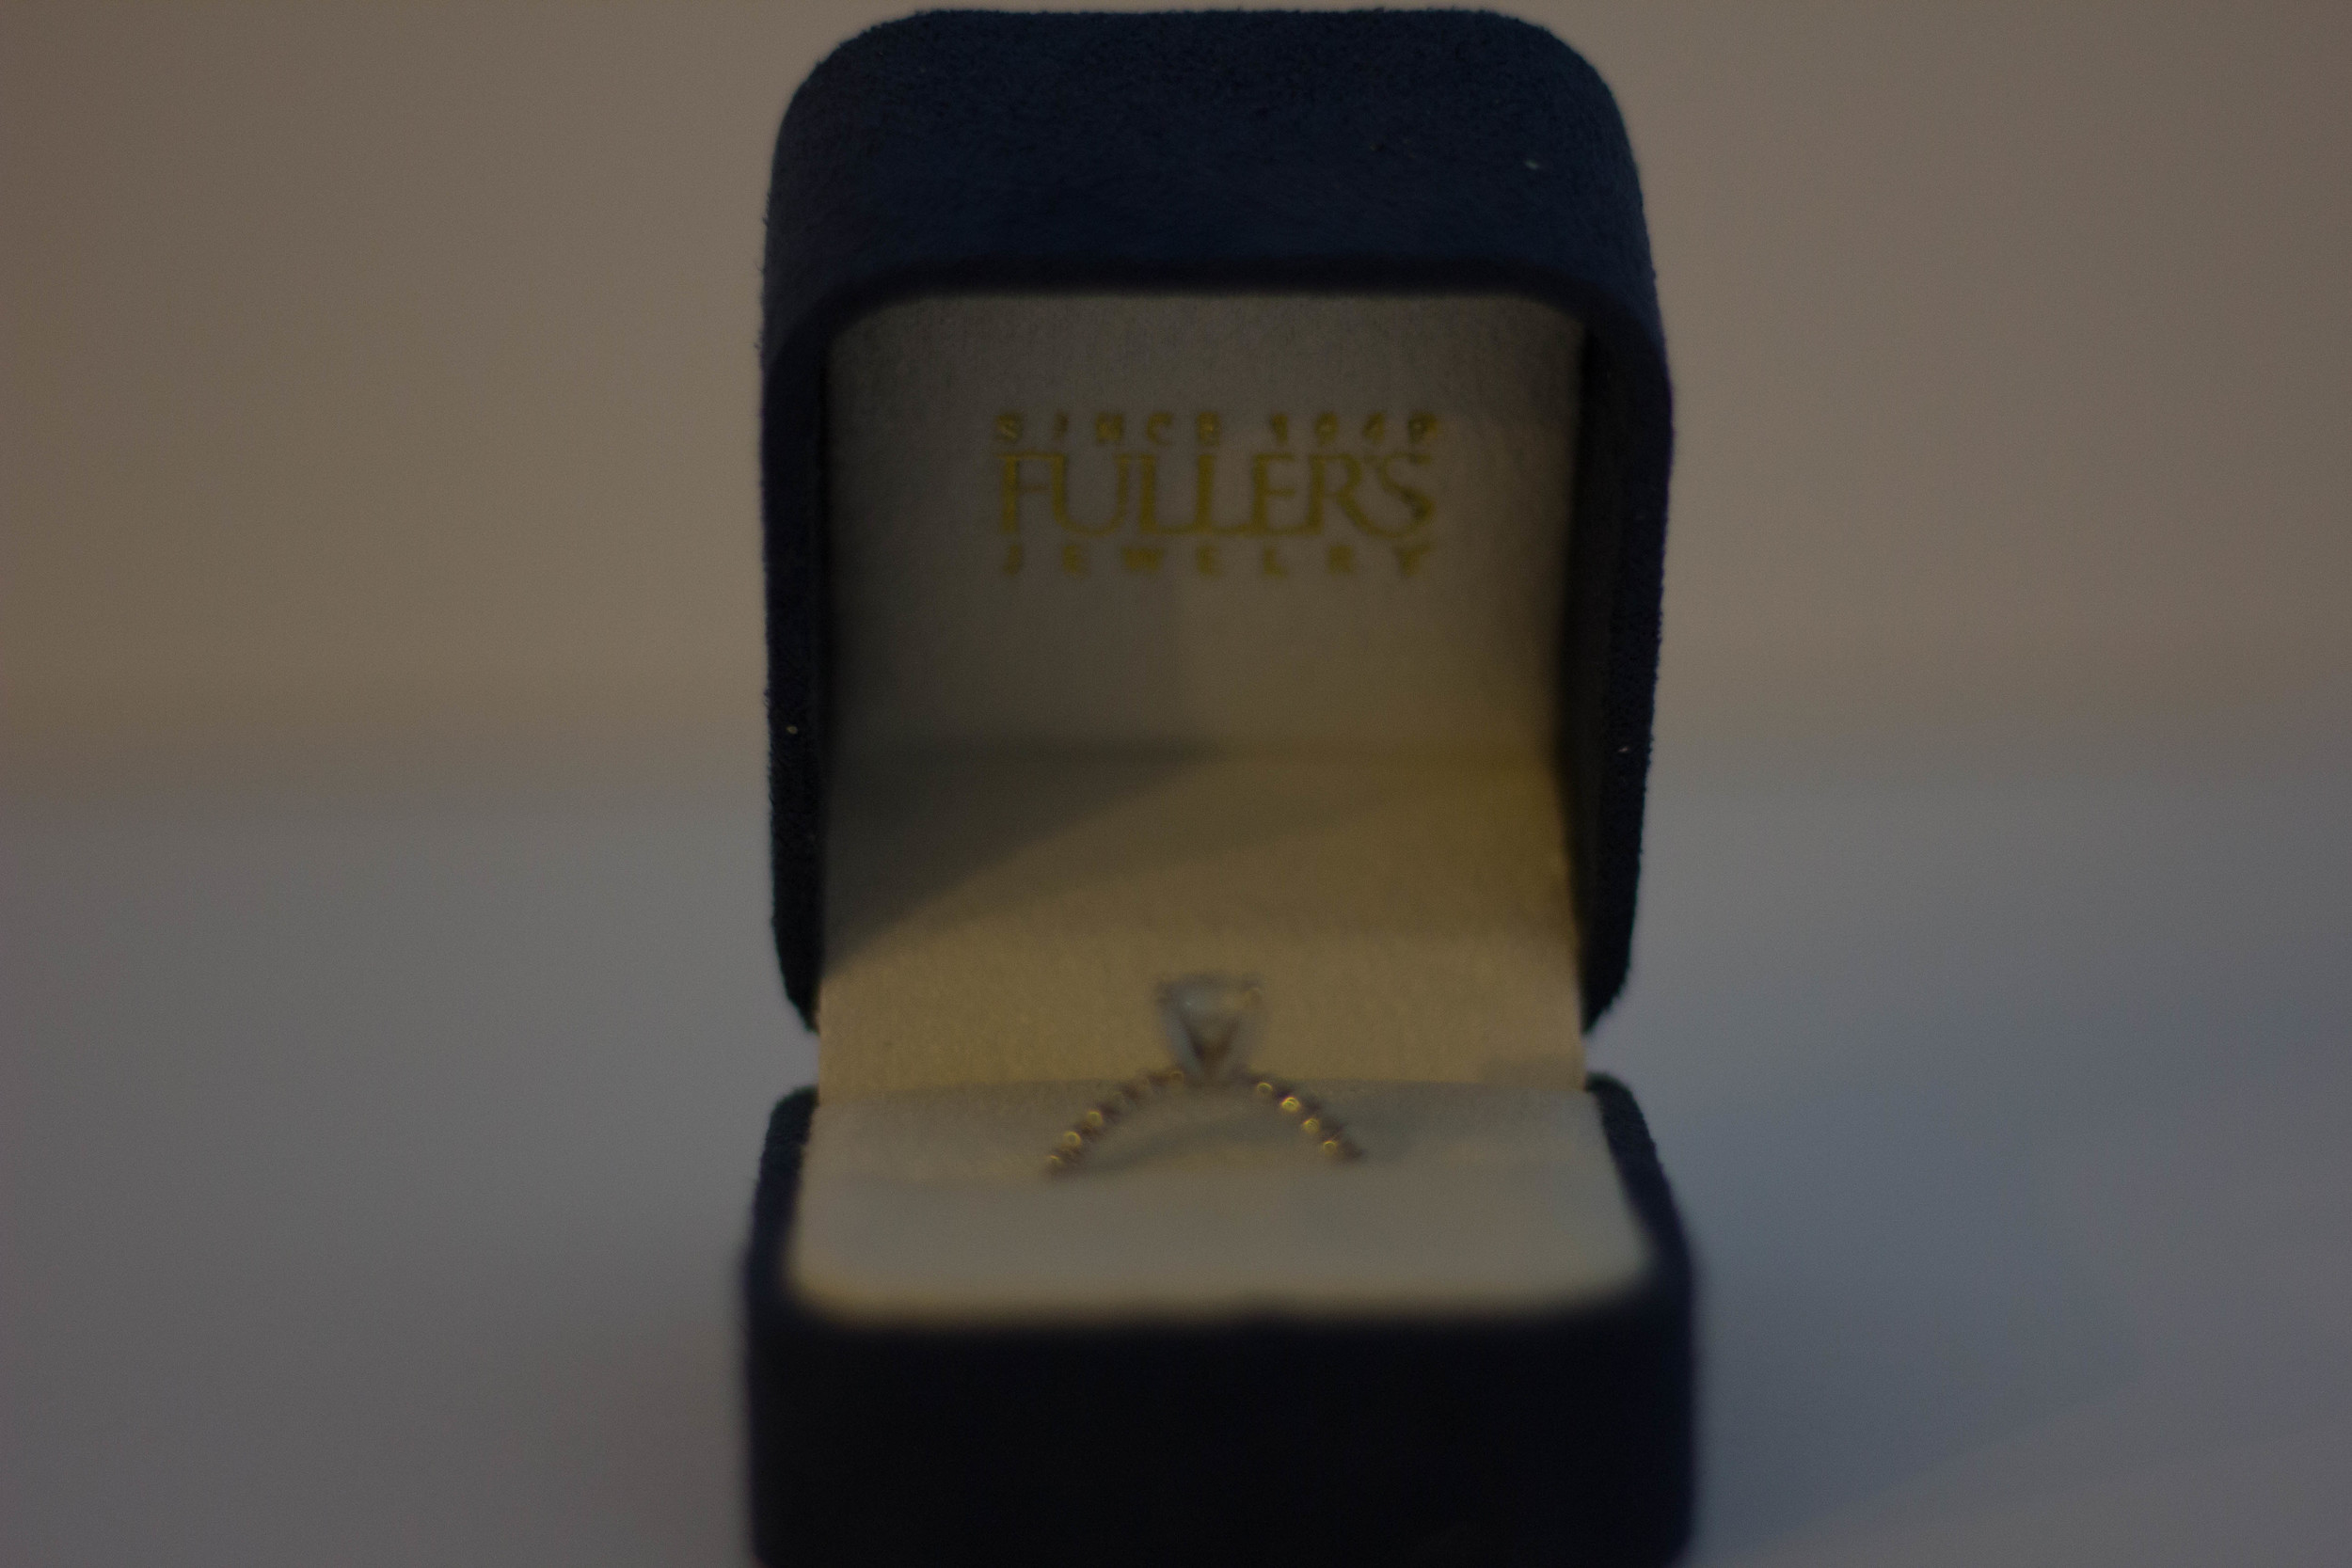 fuller's jewelry store, engagement ring, dallas engagement ring store, diamonds, jewelry, solitare